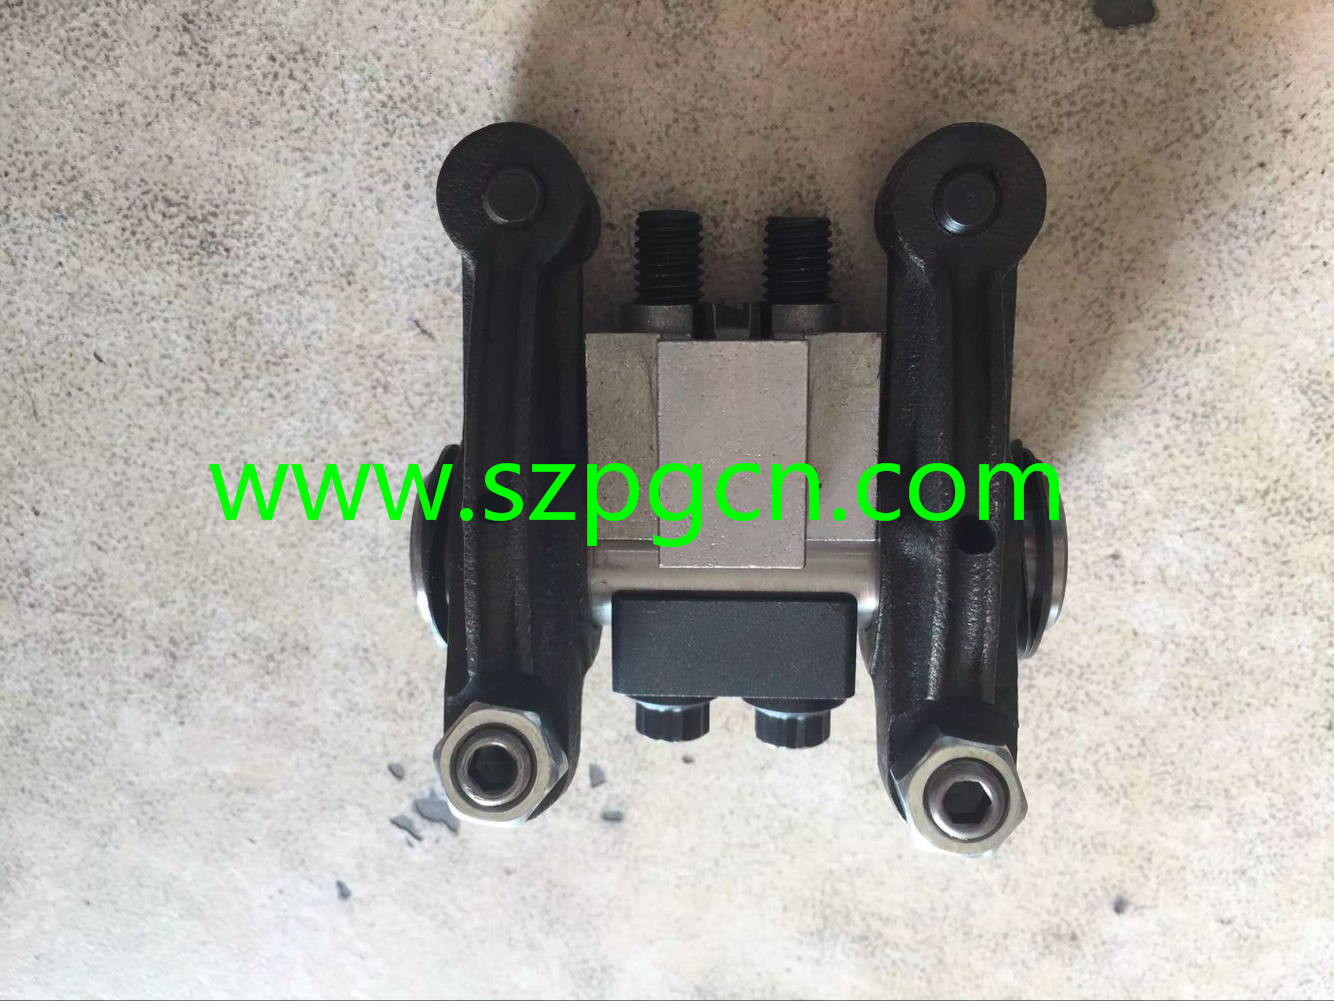 6D114 ROCKER ARM ASSY